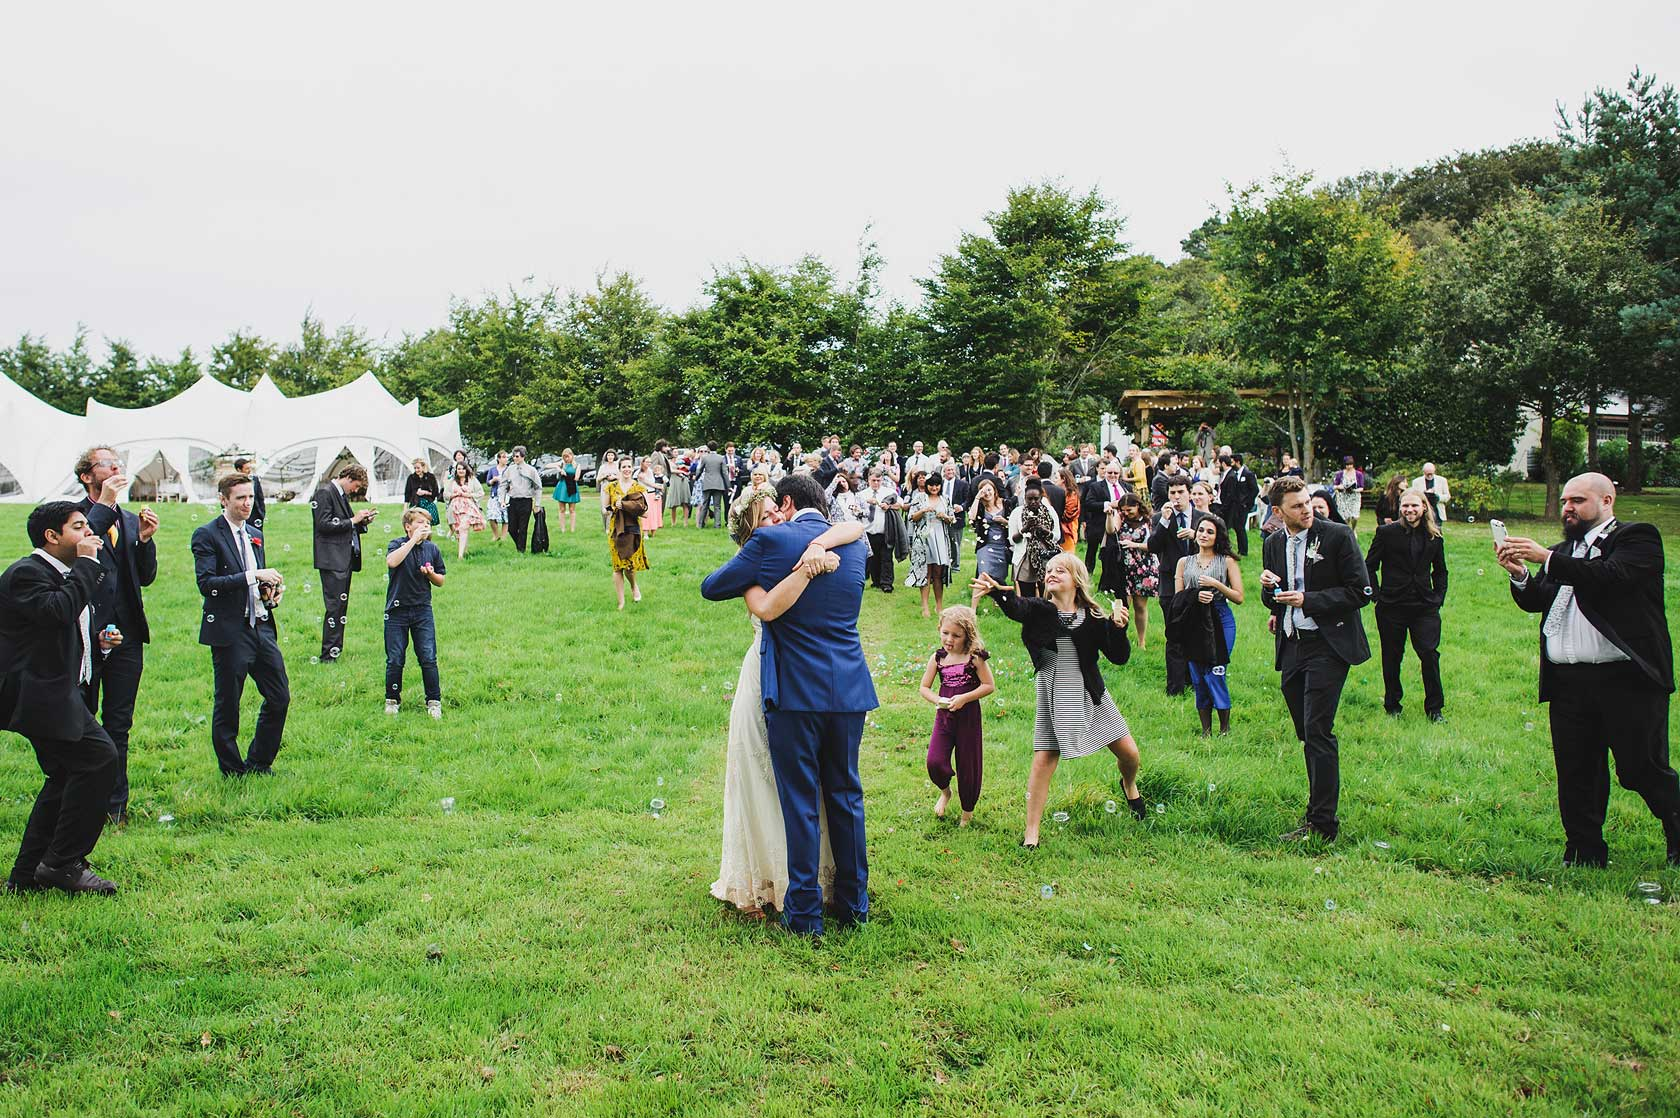 Reportage Wedding Photography in Shropshire